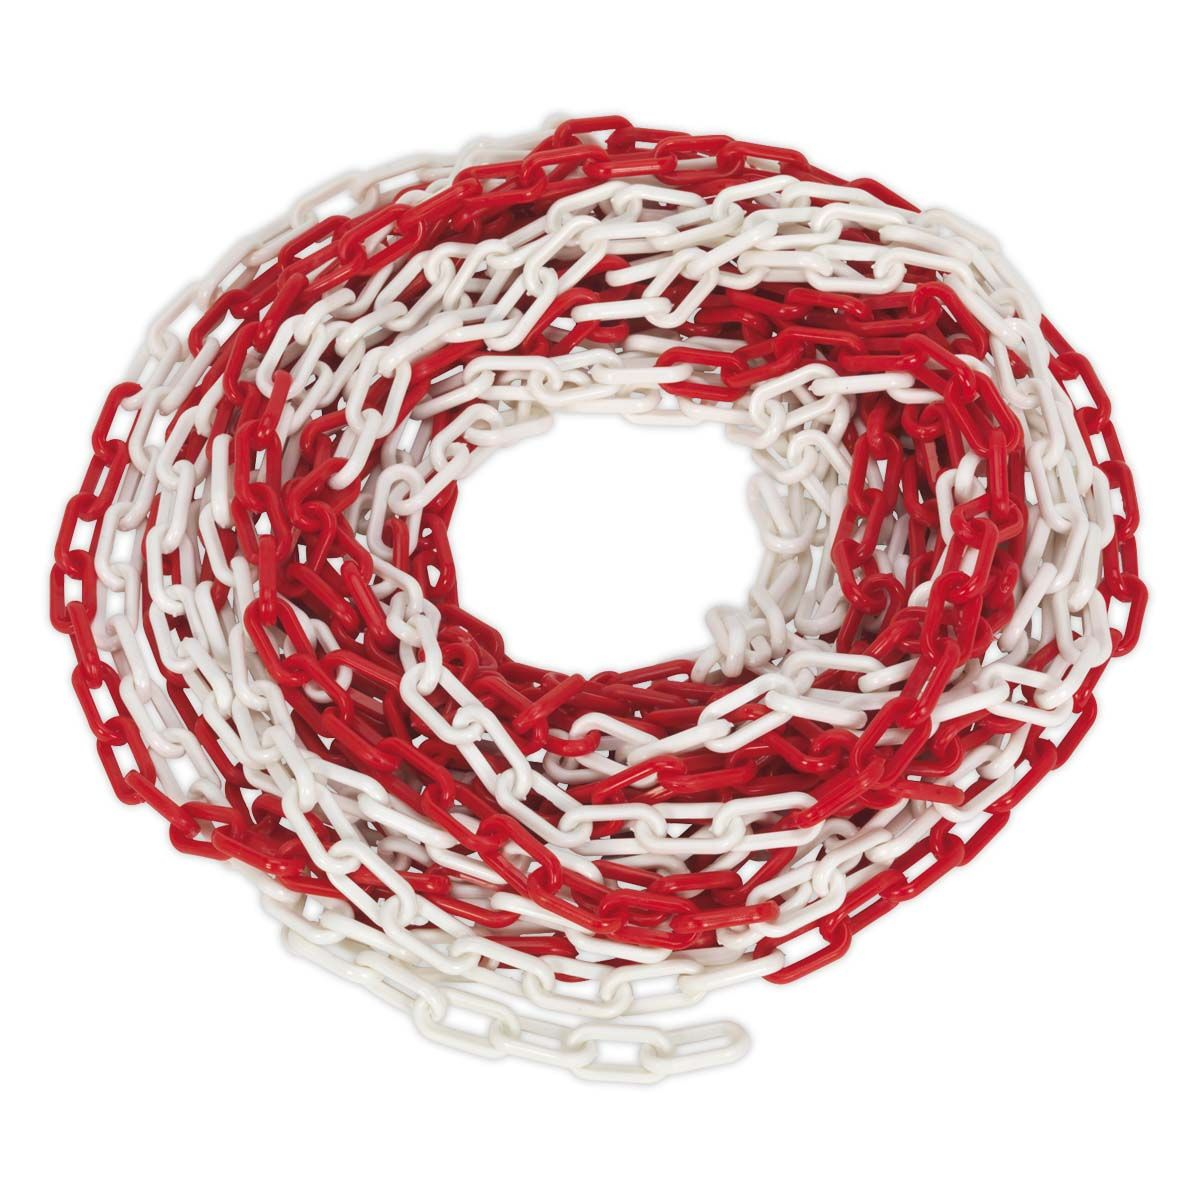 Sealey Safety Chain Red/White 25m x 6mm